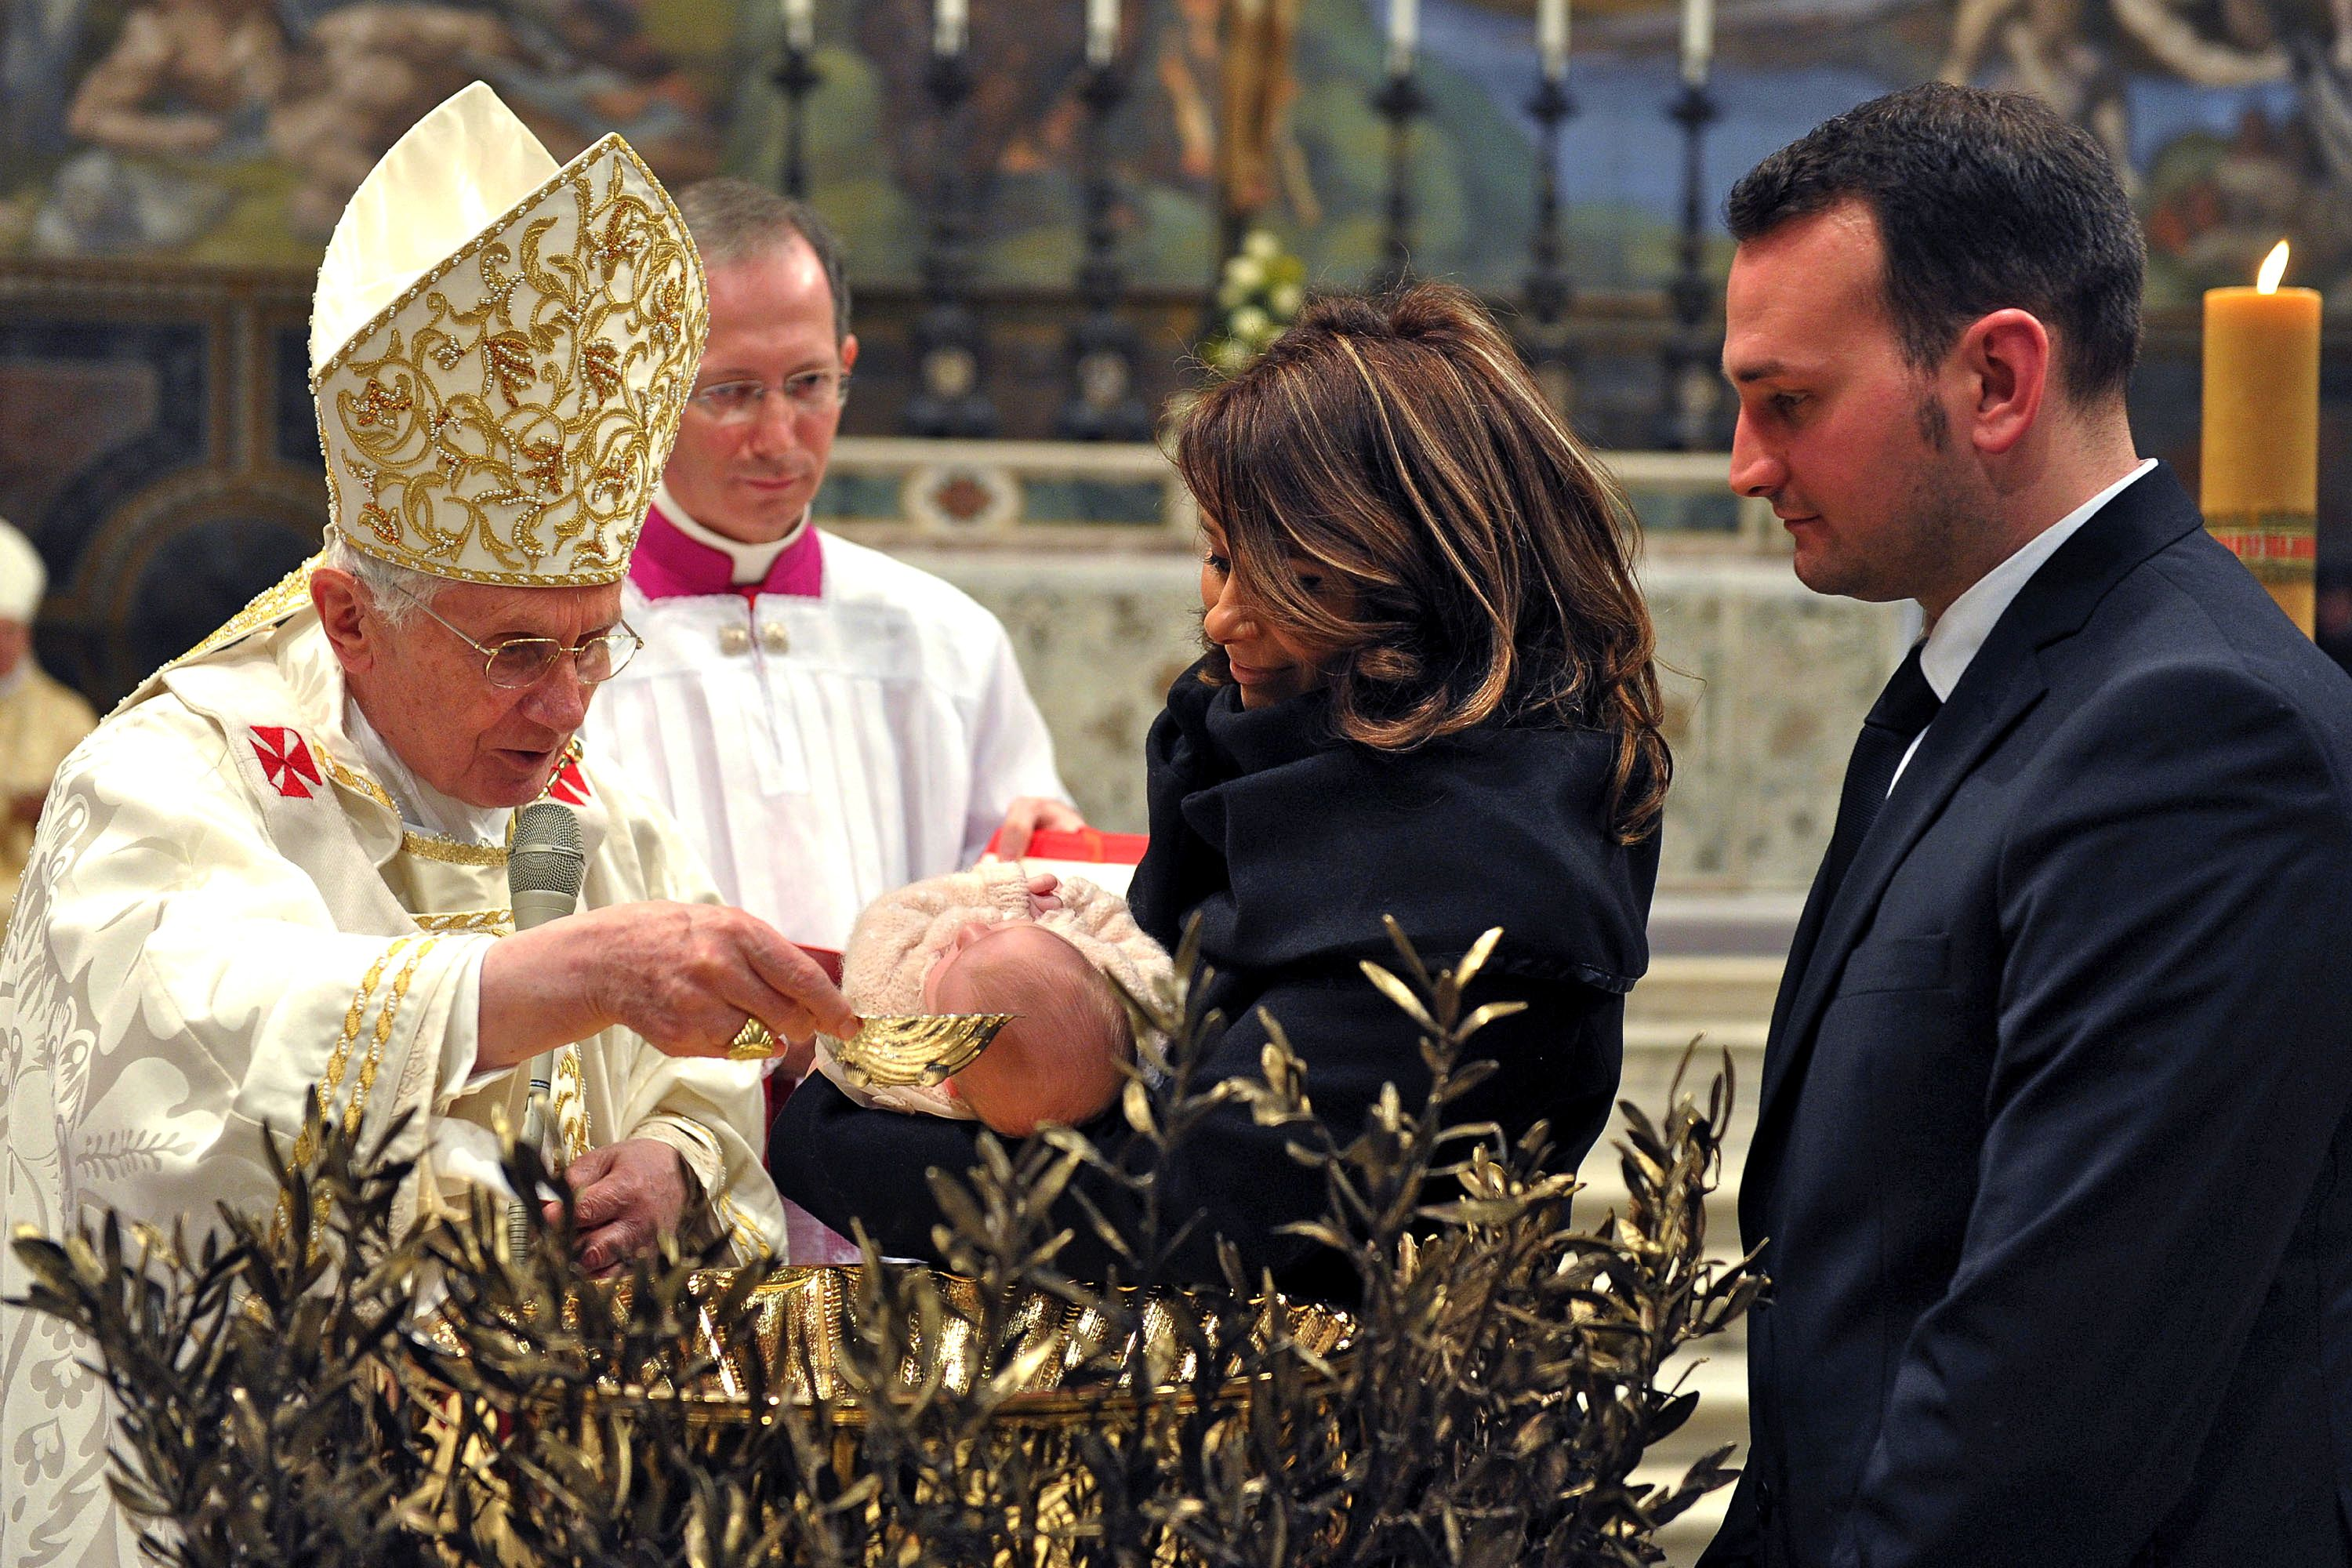 baptism in the catholic church Baptism the sacrament of baptism ushers us into the divine life, cleanses us from sin, and initiates us as members of the christian community it is.